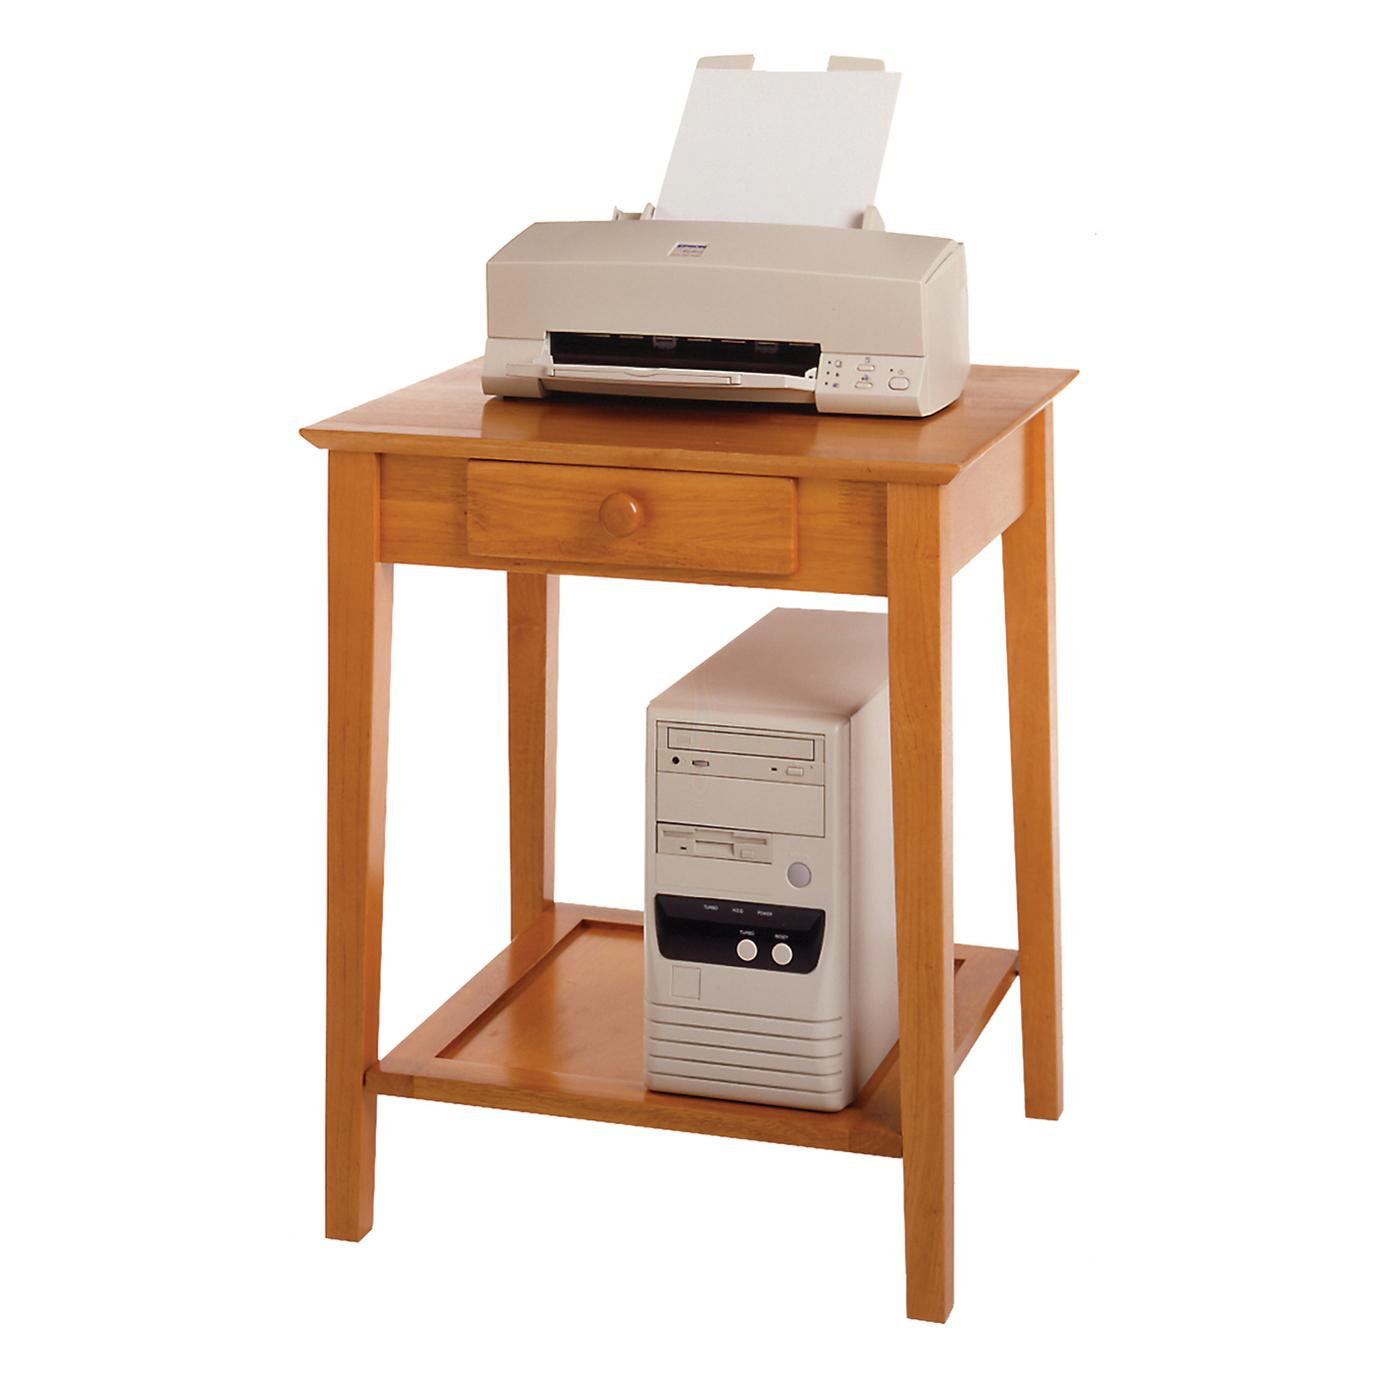 Wooden Printer Tables ~ Winsome studio end printer table by oj commerce